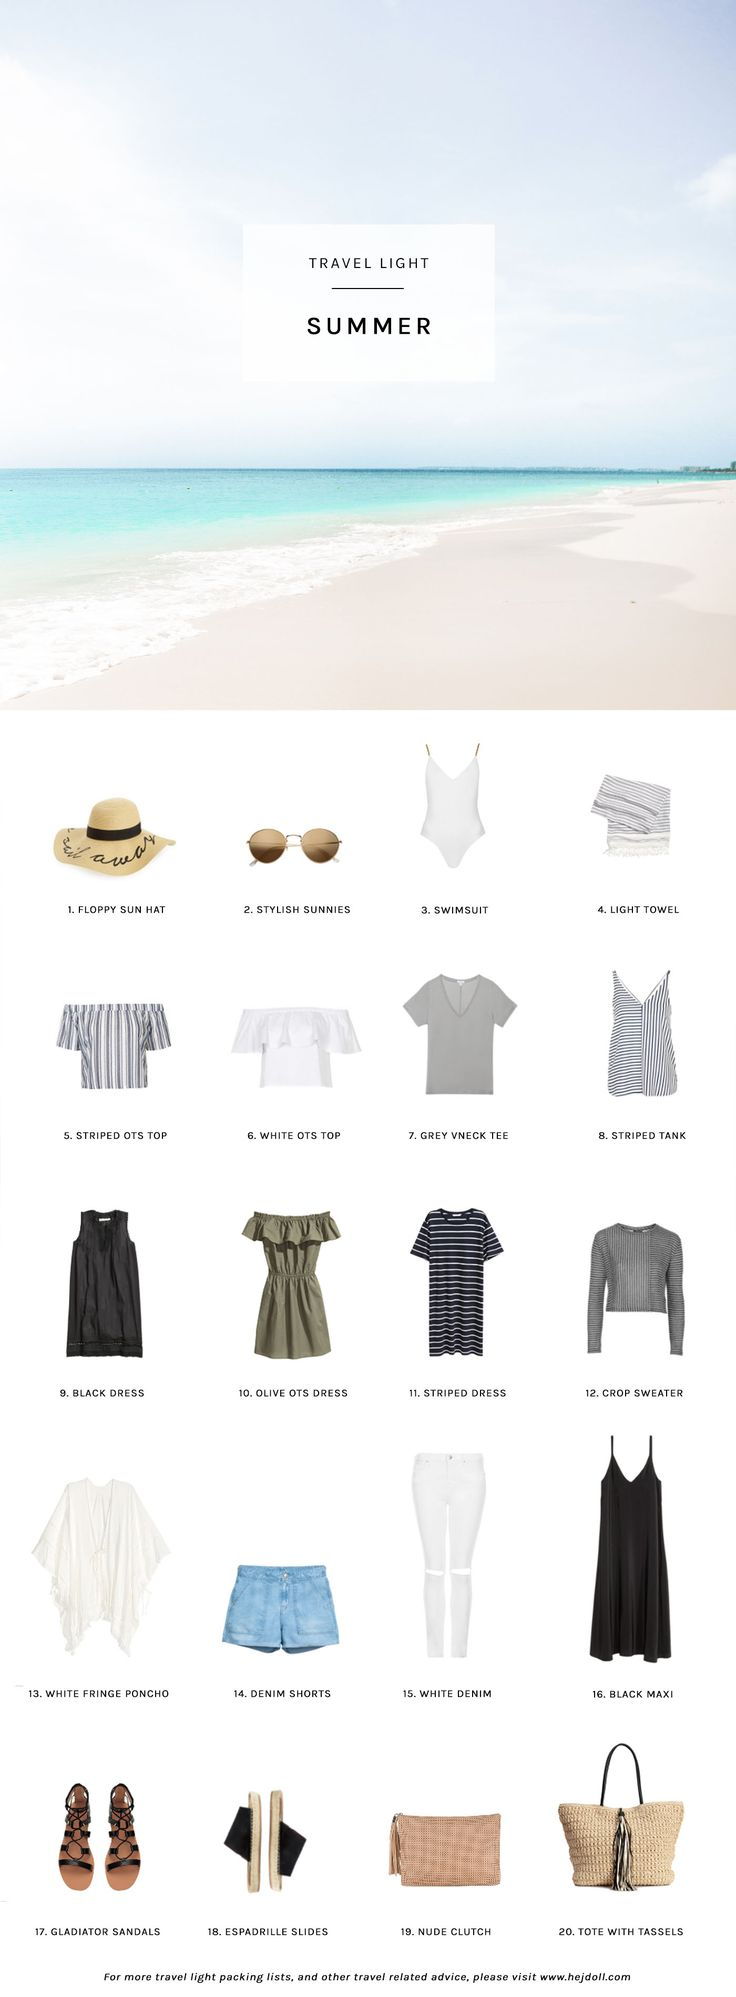 1. Sail Away Floppy Sun Hat / 2. Gold-Colored Sunglasses / 3. Chain Strap Swimsuit / 4. Striped Beach Towel / 5. Striped Off the Shoulder Top / 6. Off the Shoulder Bardot Top / 7. Cuyana Gray V-Neck T